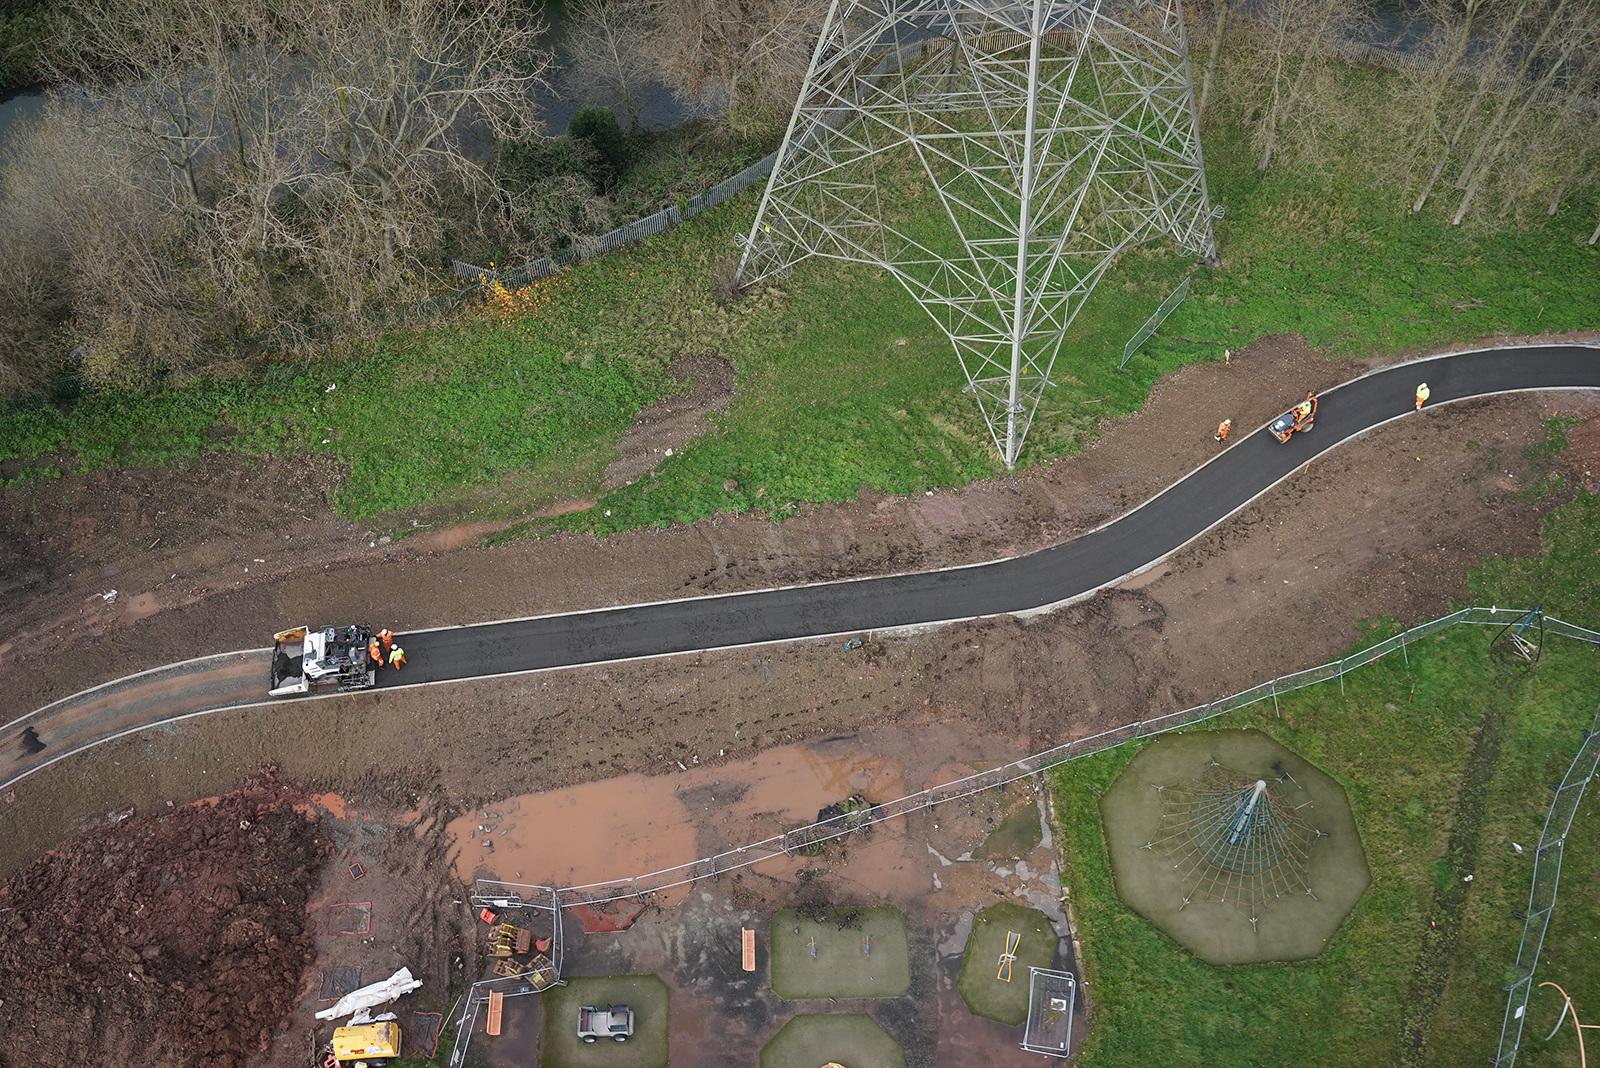 An aerial view of the low carbon asphalt cycle path at Bromford.